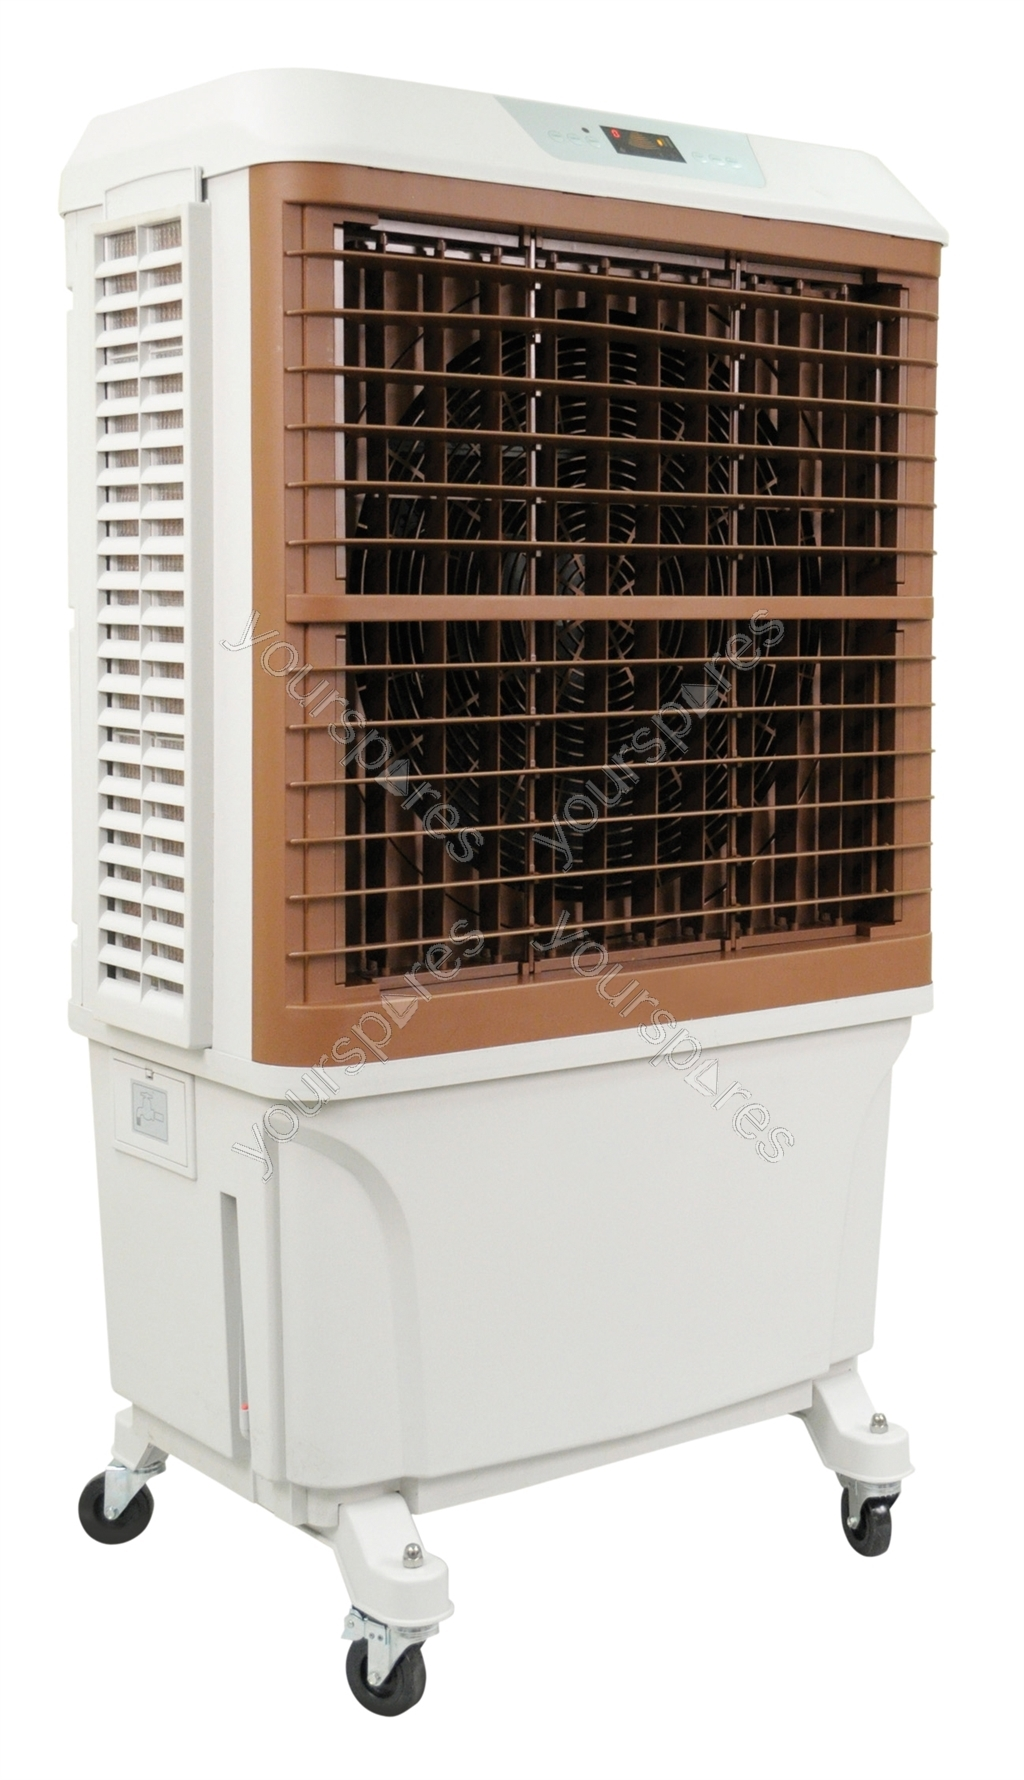 Evaporative Water Cooler : Remote control evaporative air cooler with l water tank